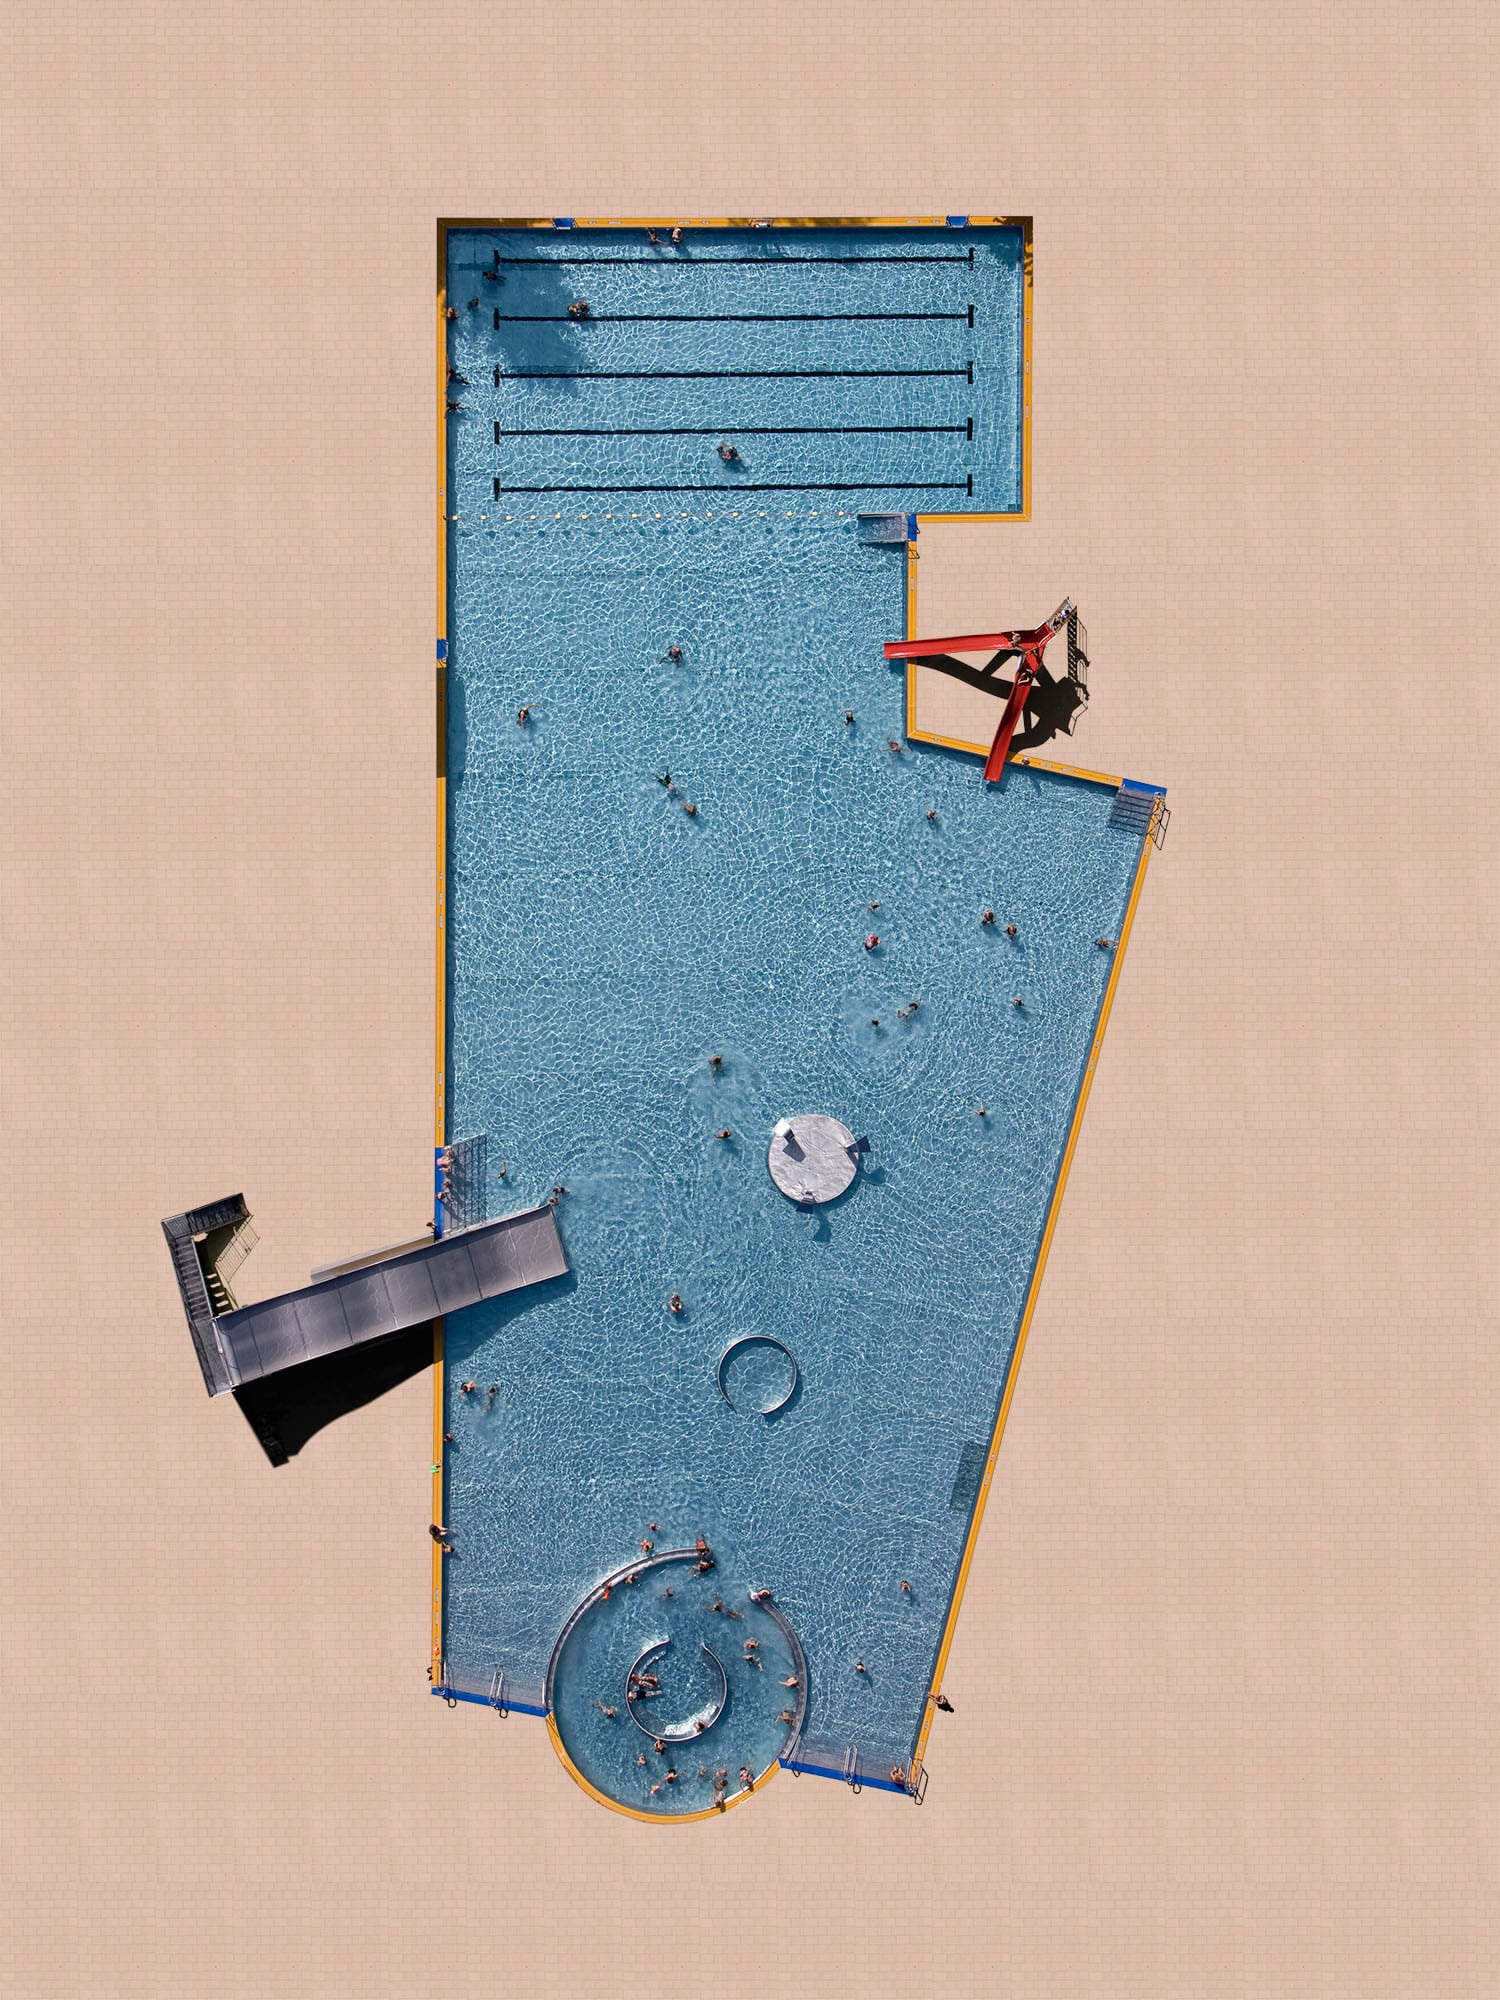 Abstract Aerials of Public Swimming Pools Shot with Drones by Stephan Zirwes | Yellowtrace